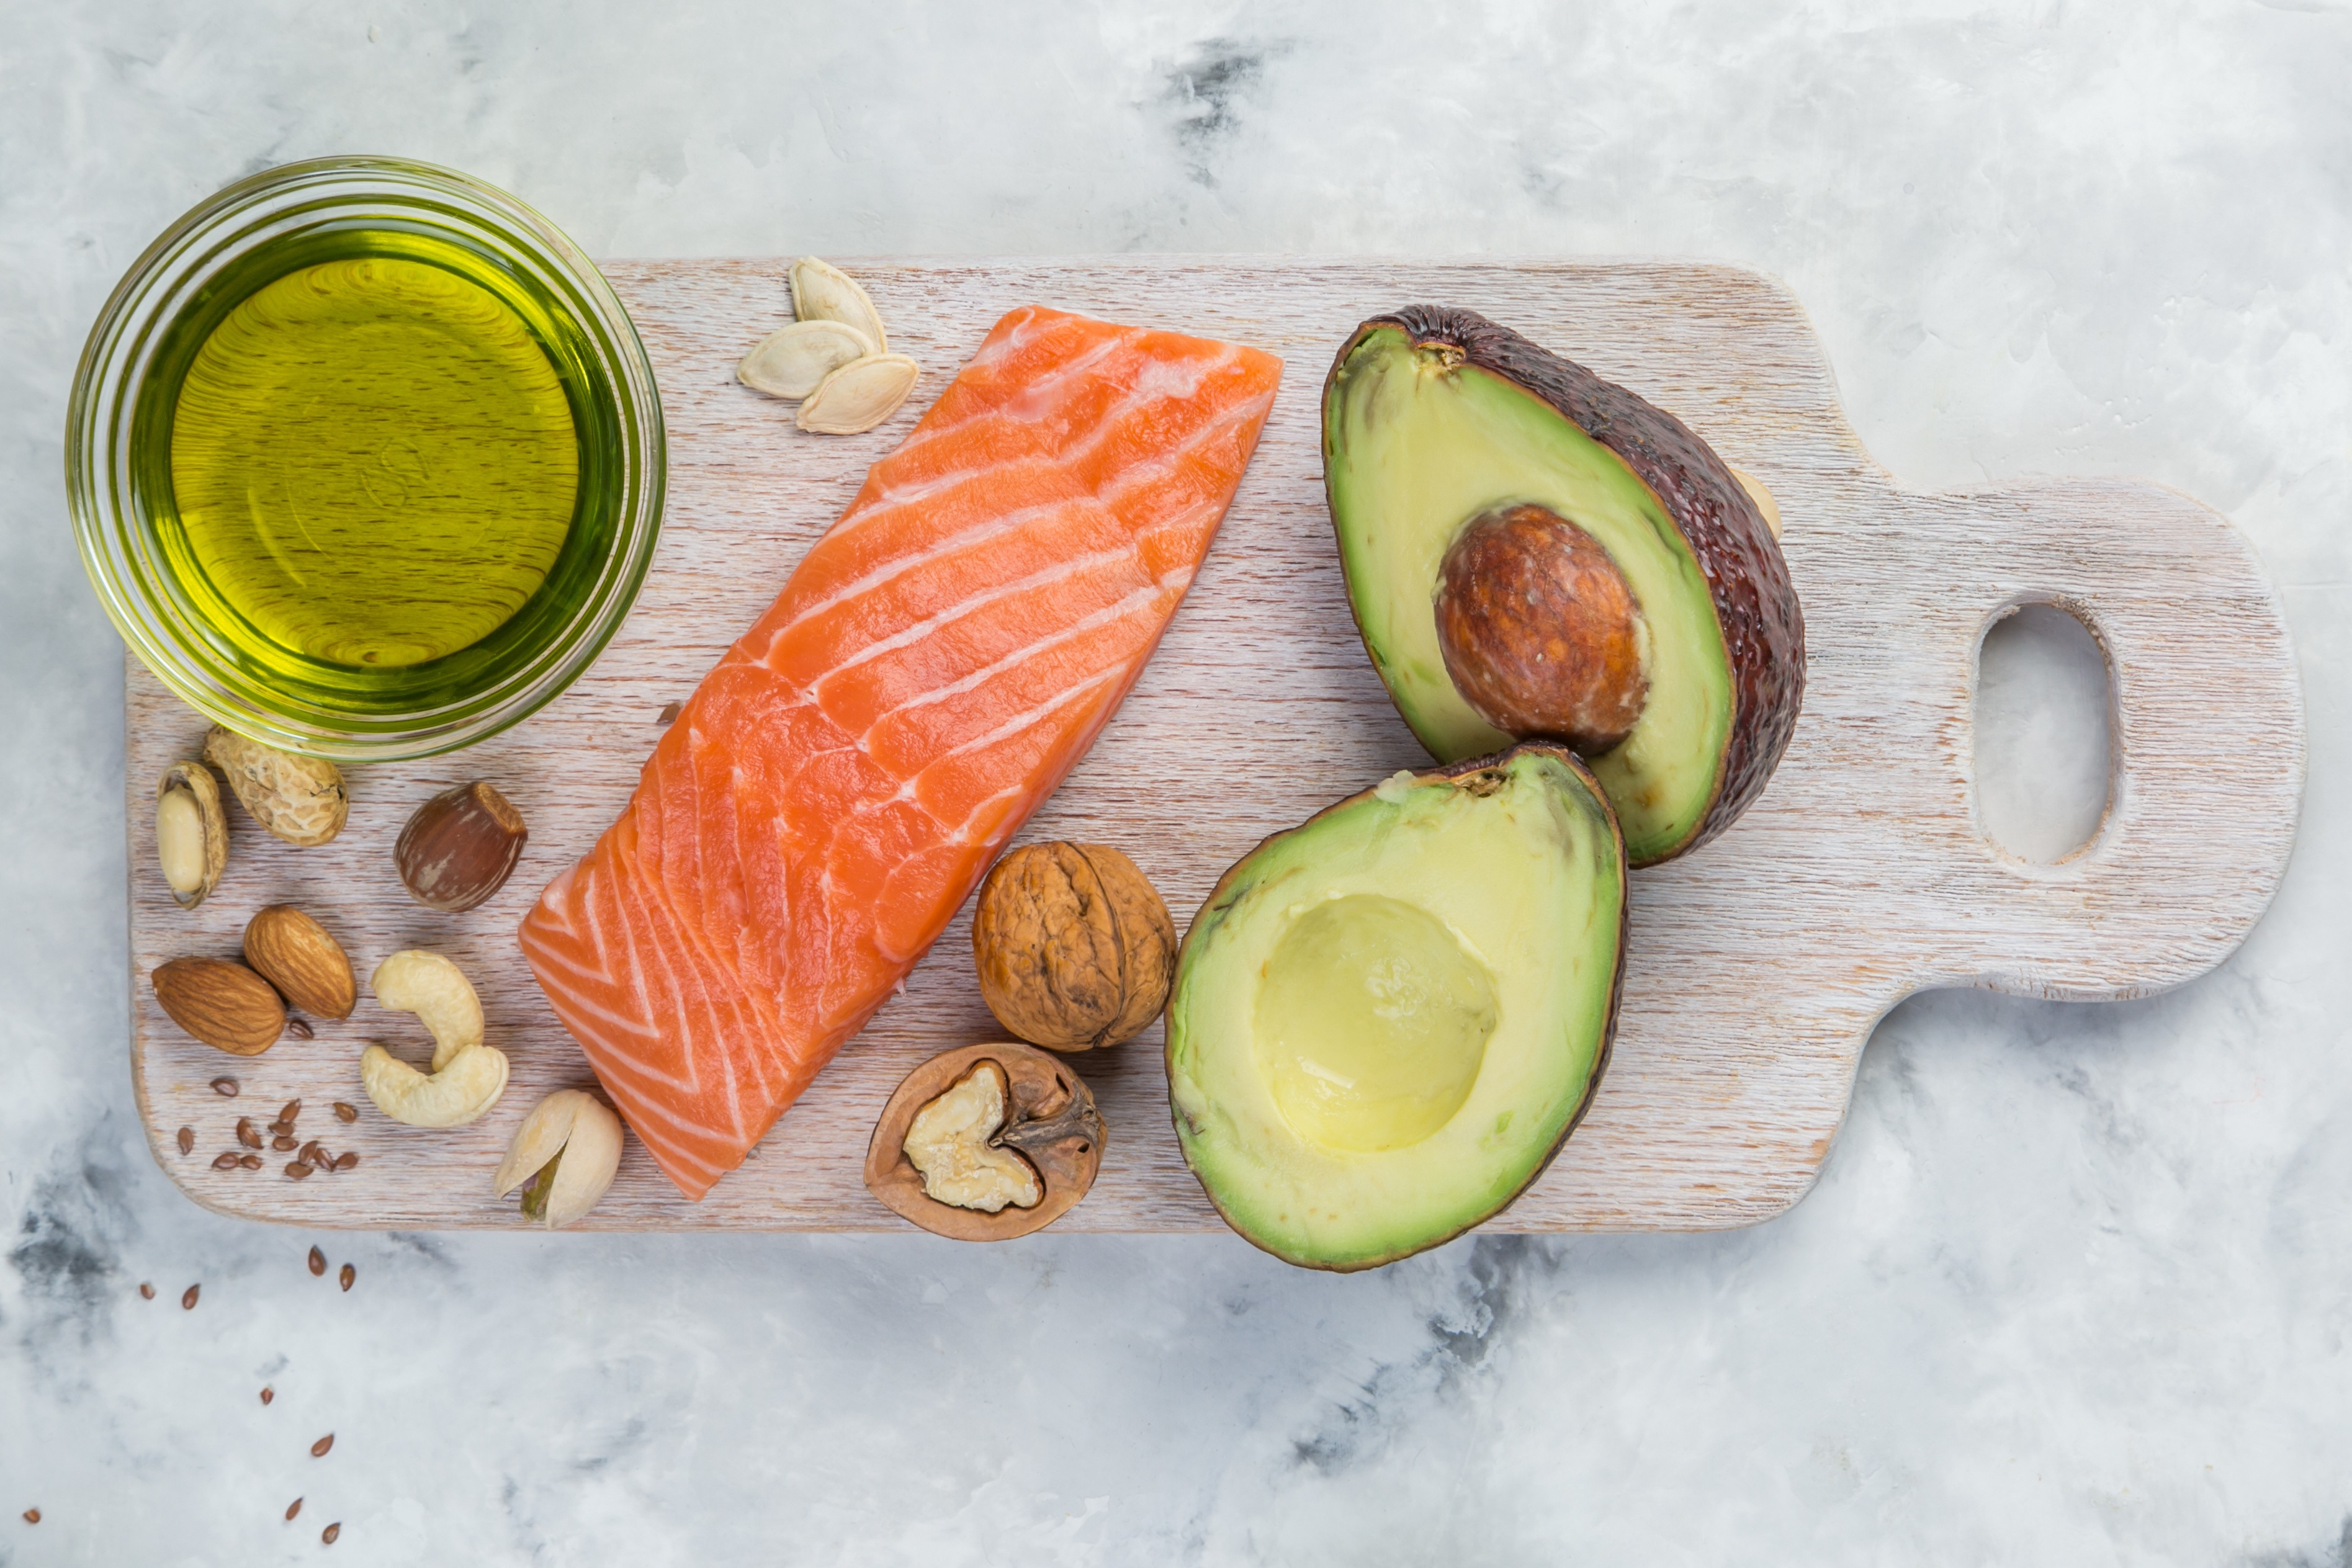 Now, what are the main fatty acids in our diet?